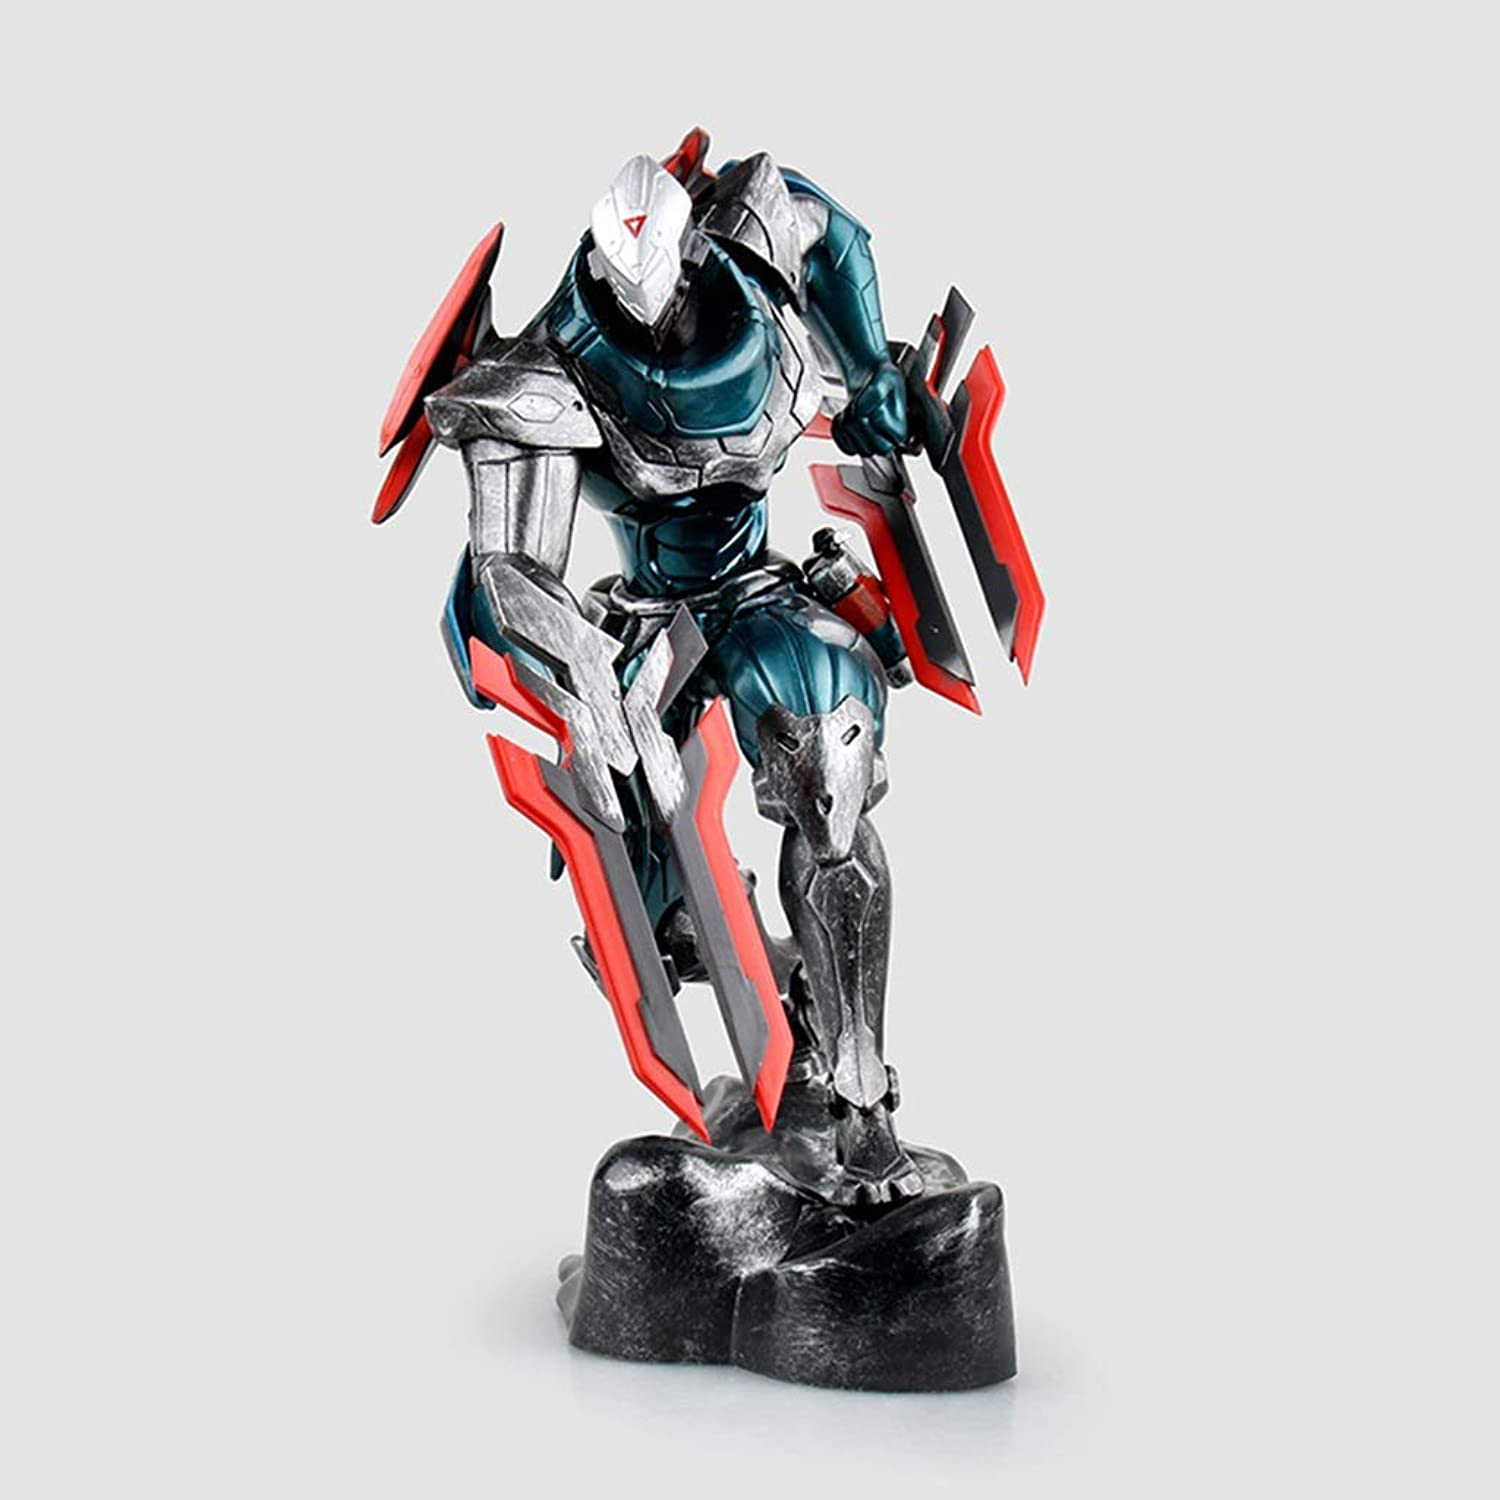 XJRHB League Of Legends, The Main Hand Of The Movie Stream, Anime Model Souvenir Collection Crafts